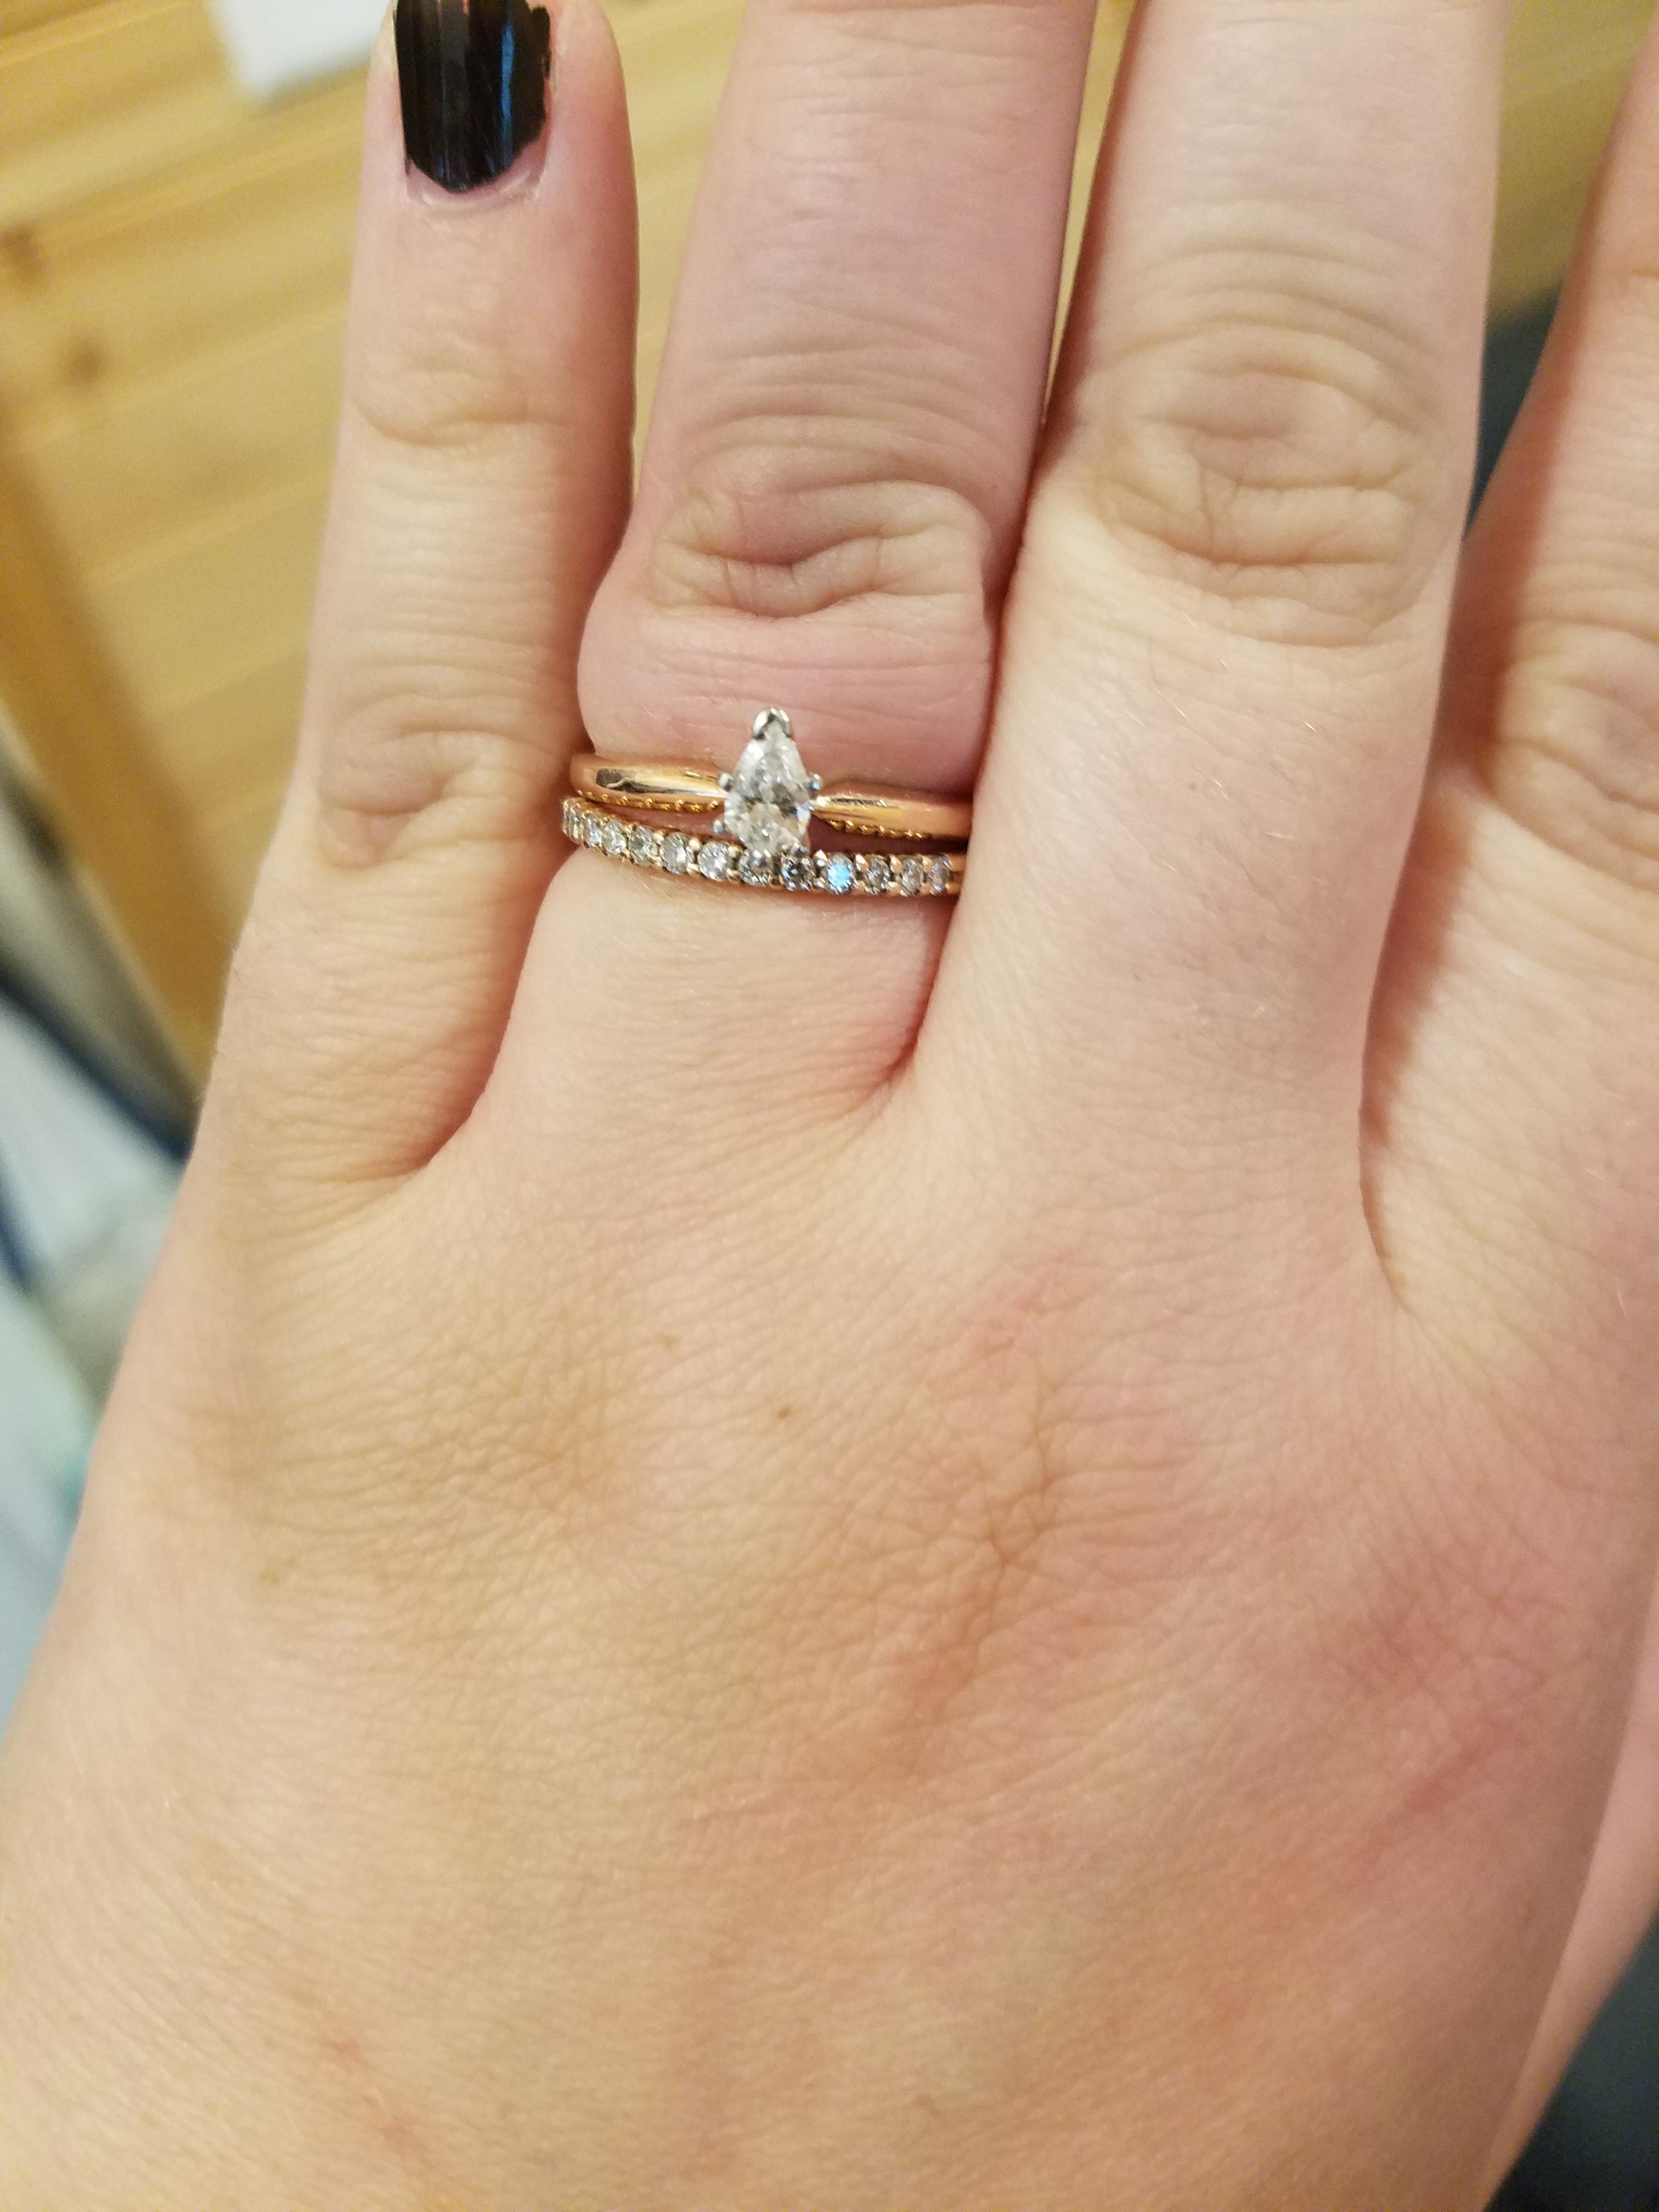 Engagement Ring And Wedding Band.Solitaire Pear Engagement Ring And Wedding Band